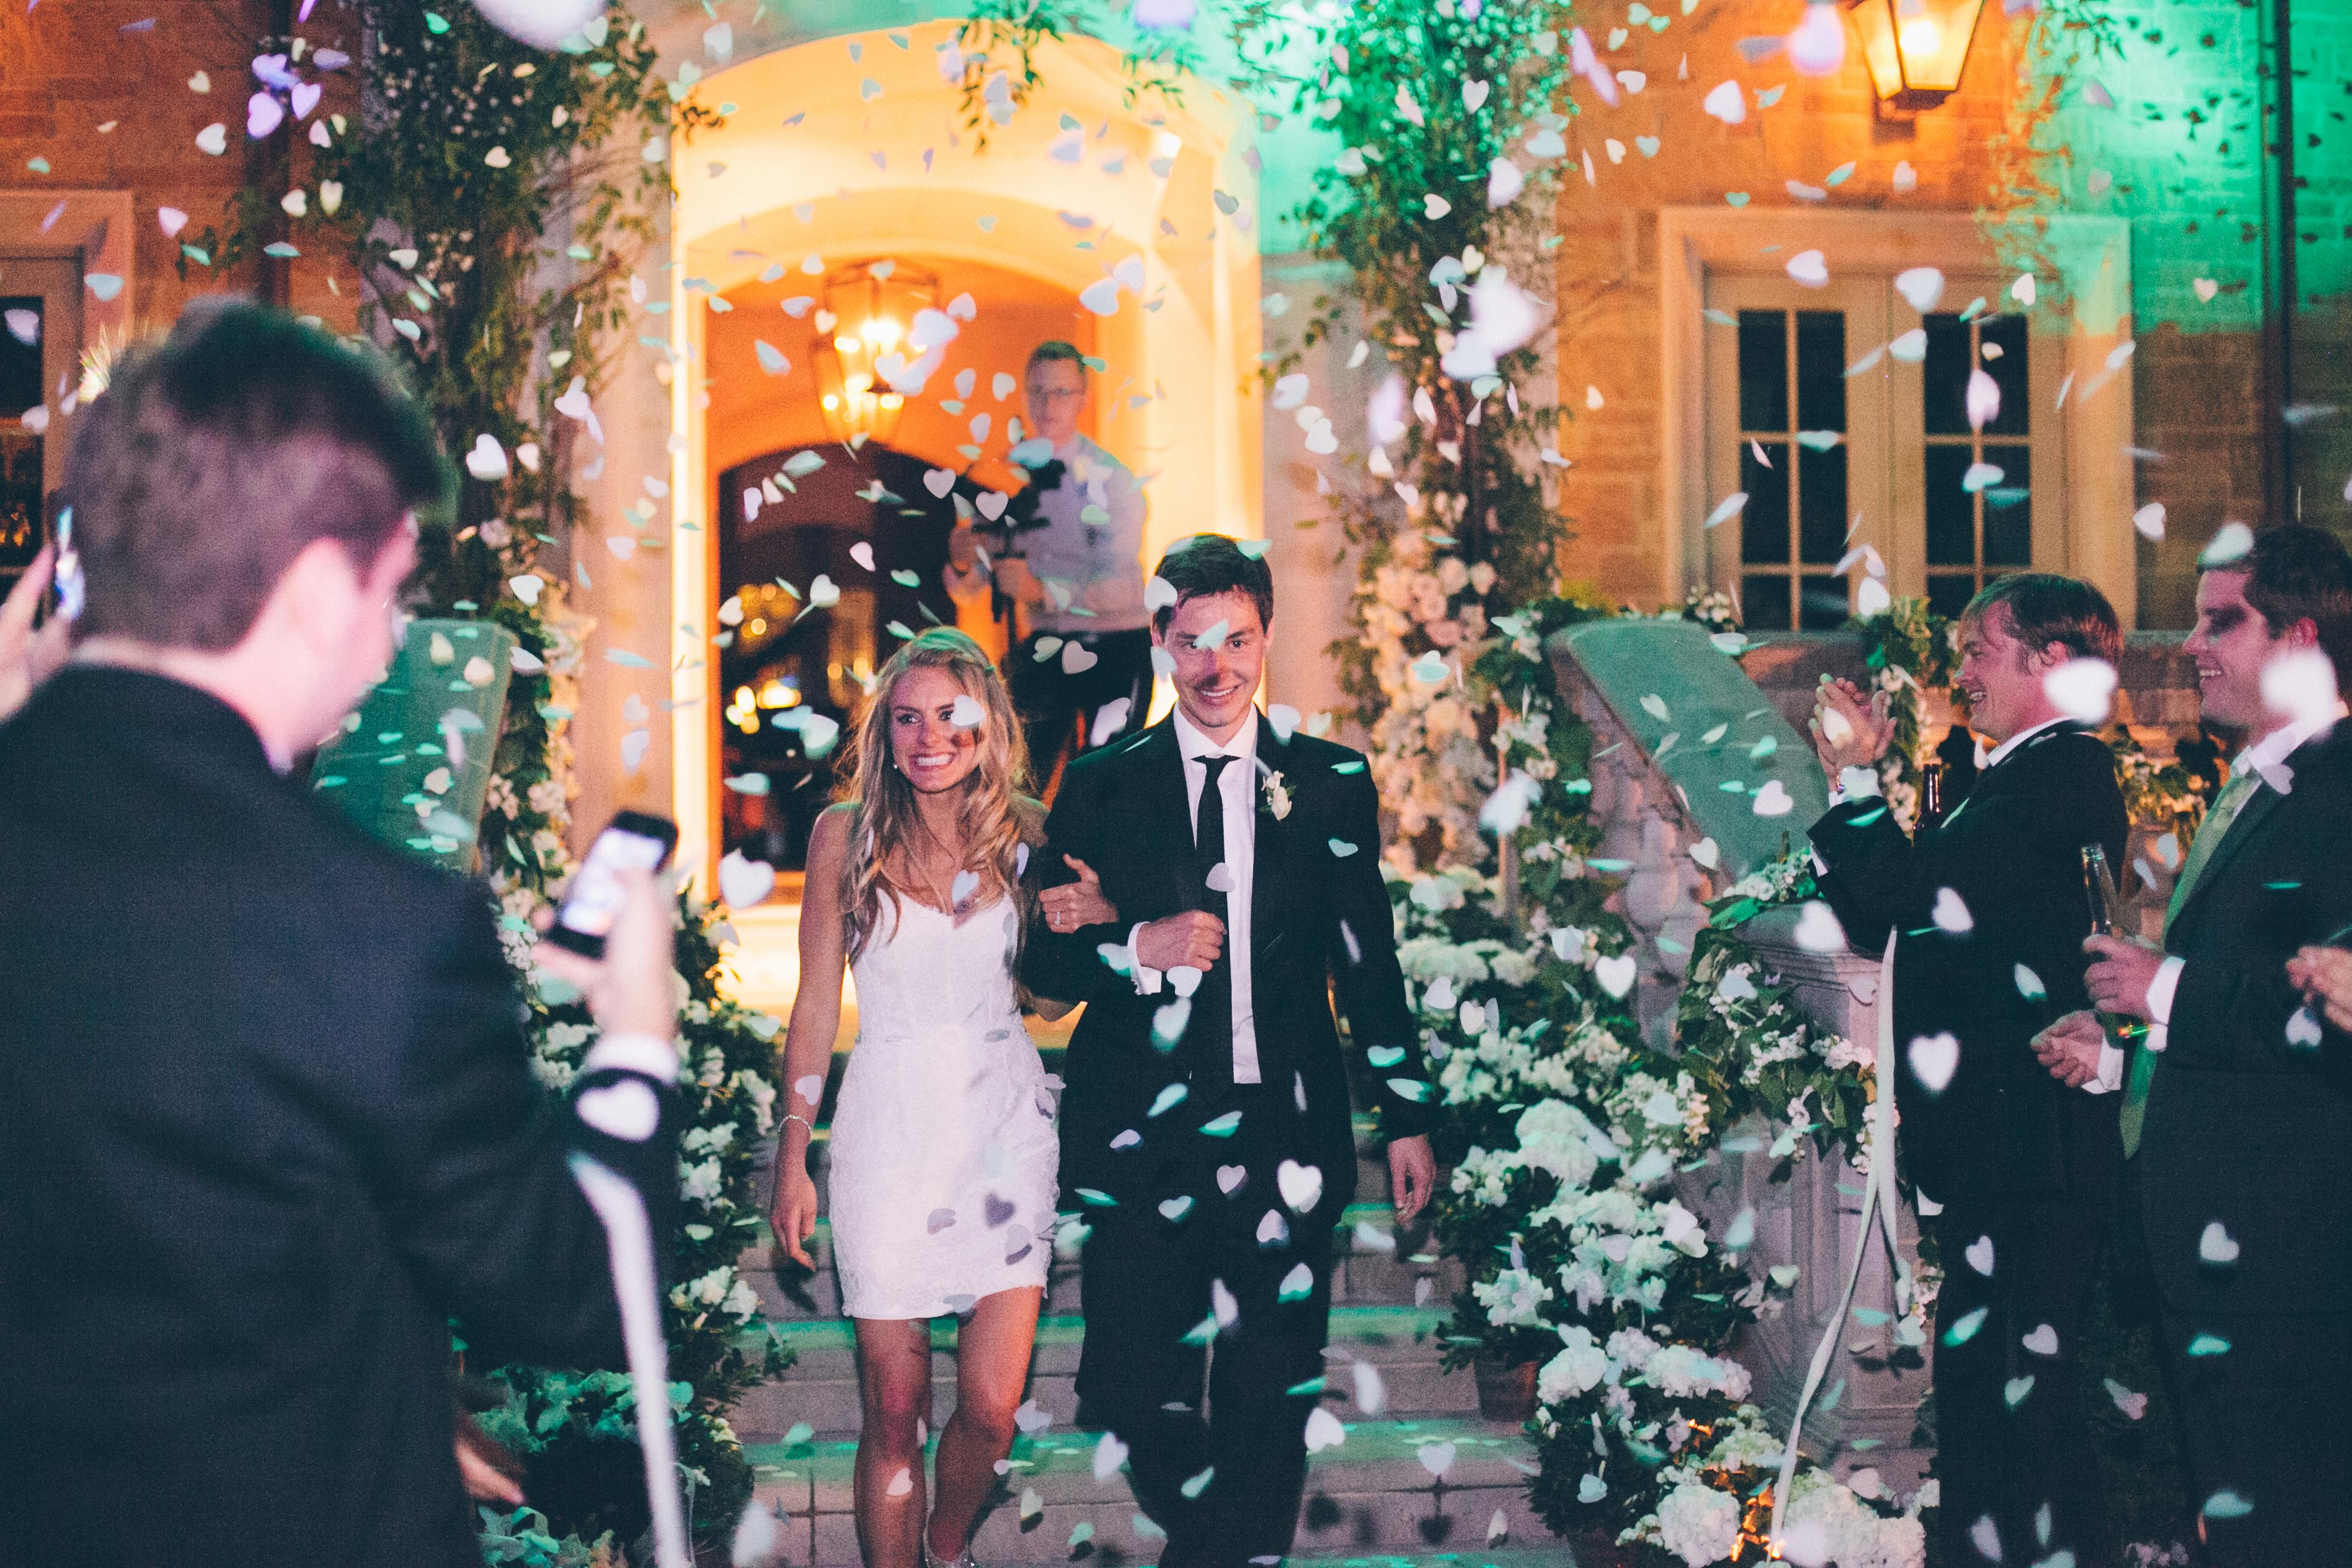 wedding grand exit with heart shaped confetti